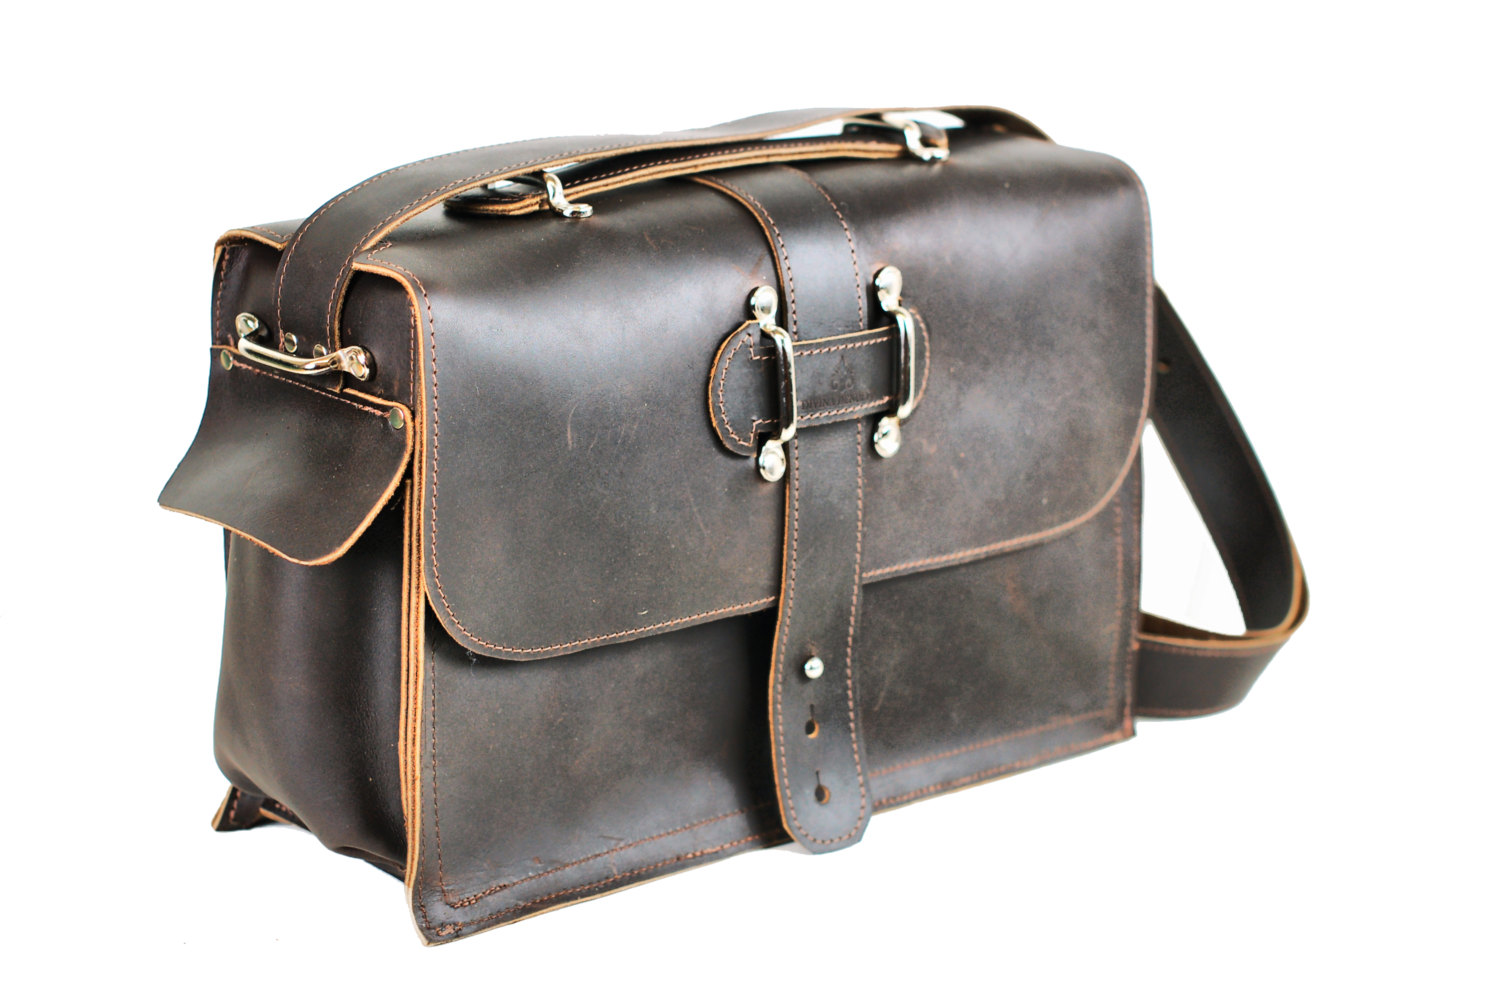 b796fec29c3b Men's Leather Satchel - Leather Messenger Bag - Leather Laptop Bag - Rustic  Industrial Design